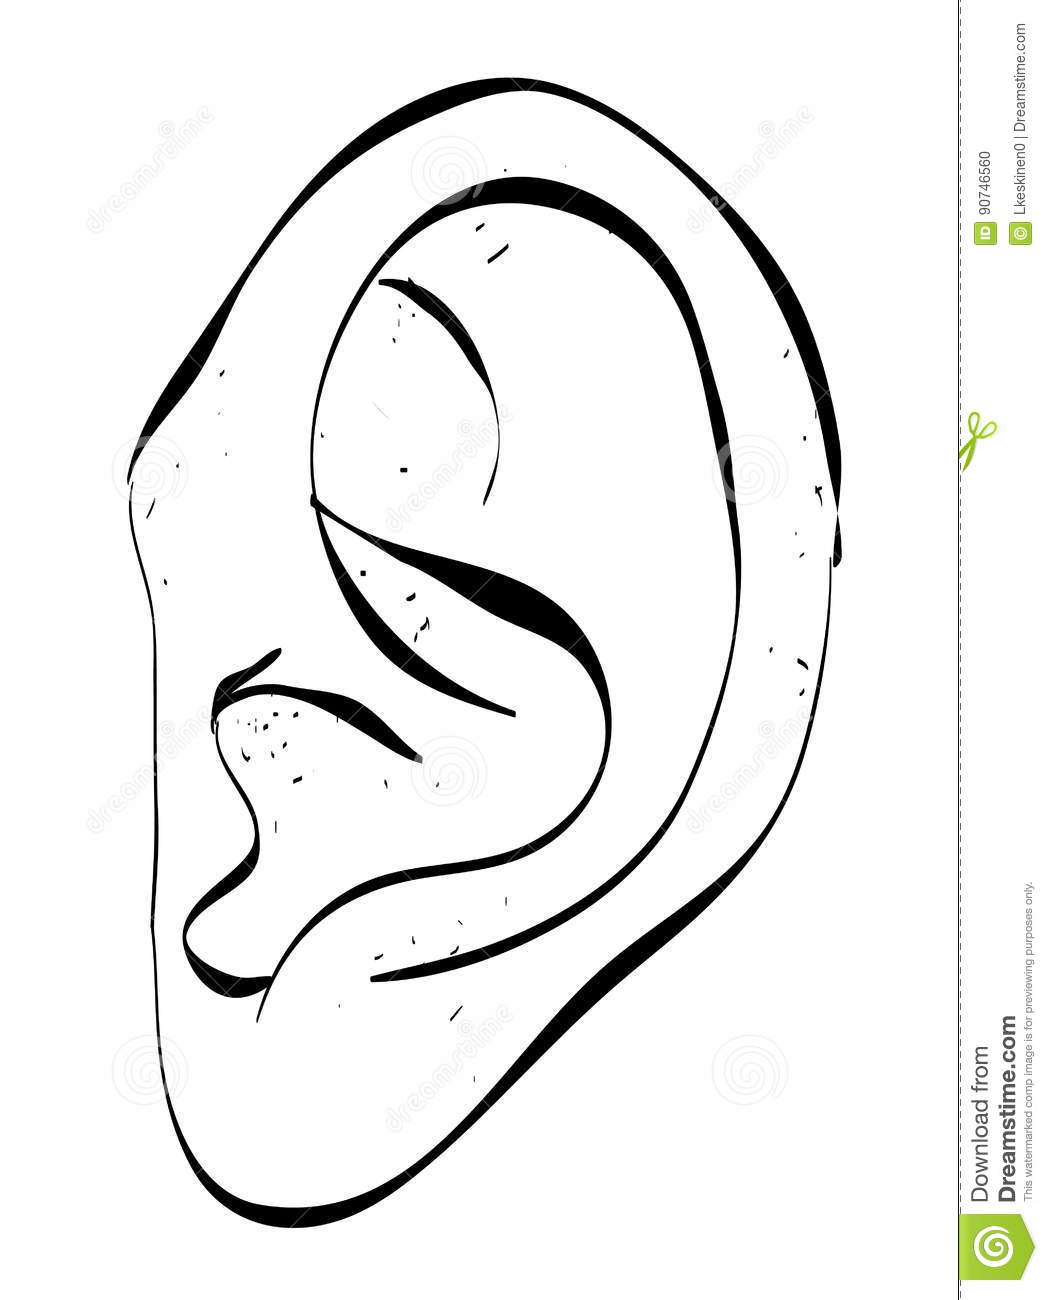 Cartoon Image Of Human Ear Stock Vector Illustration Of